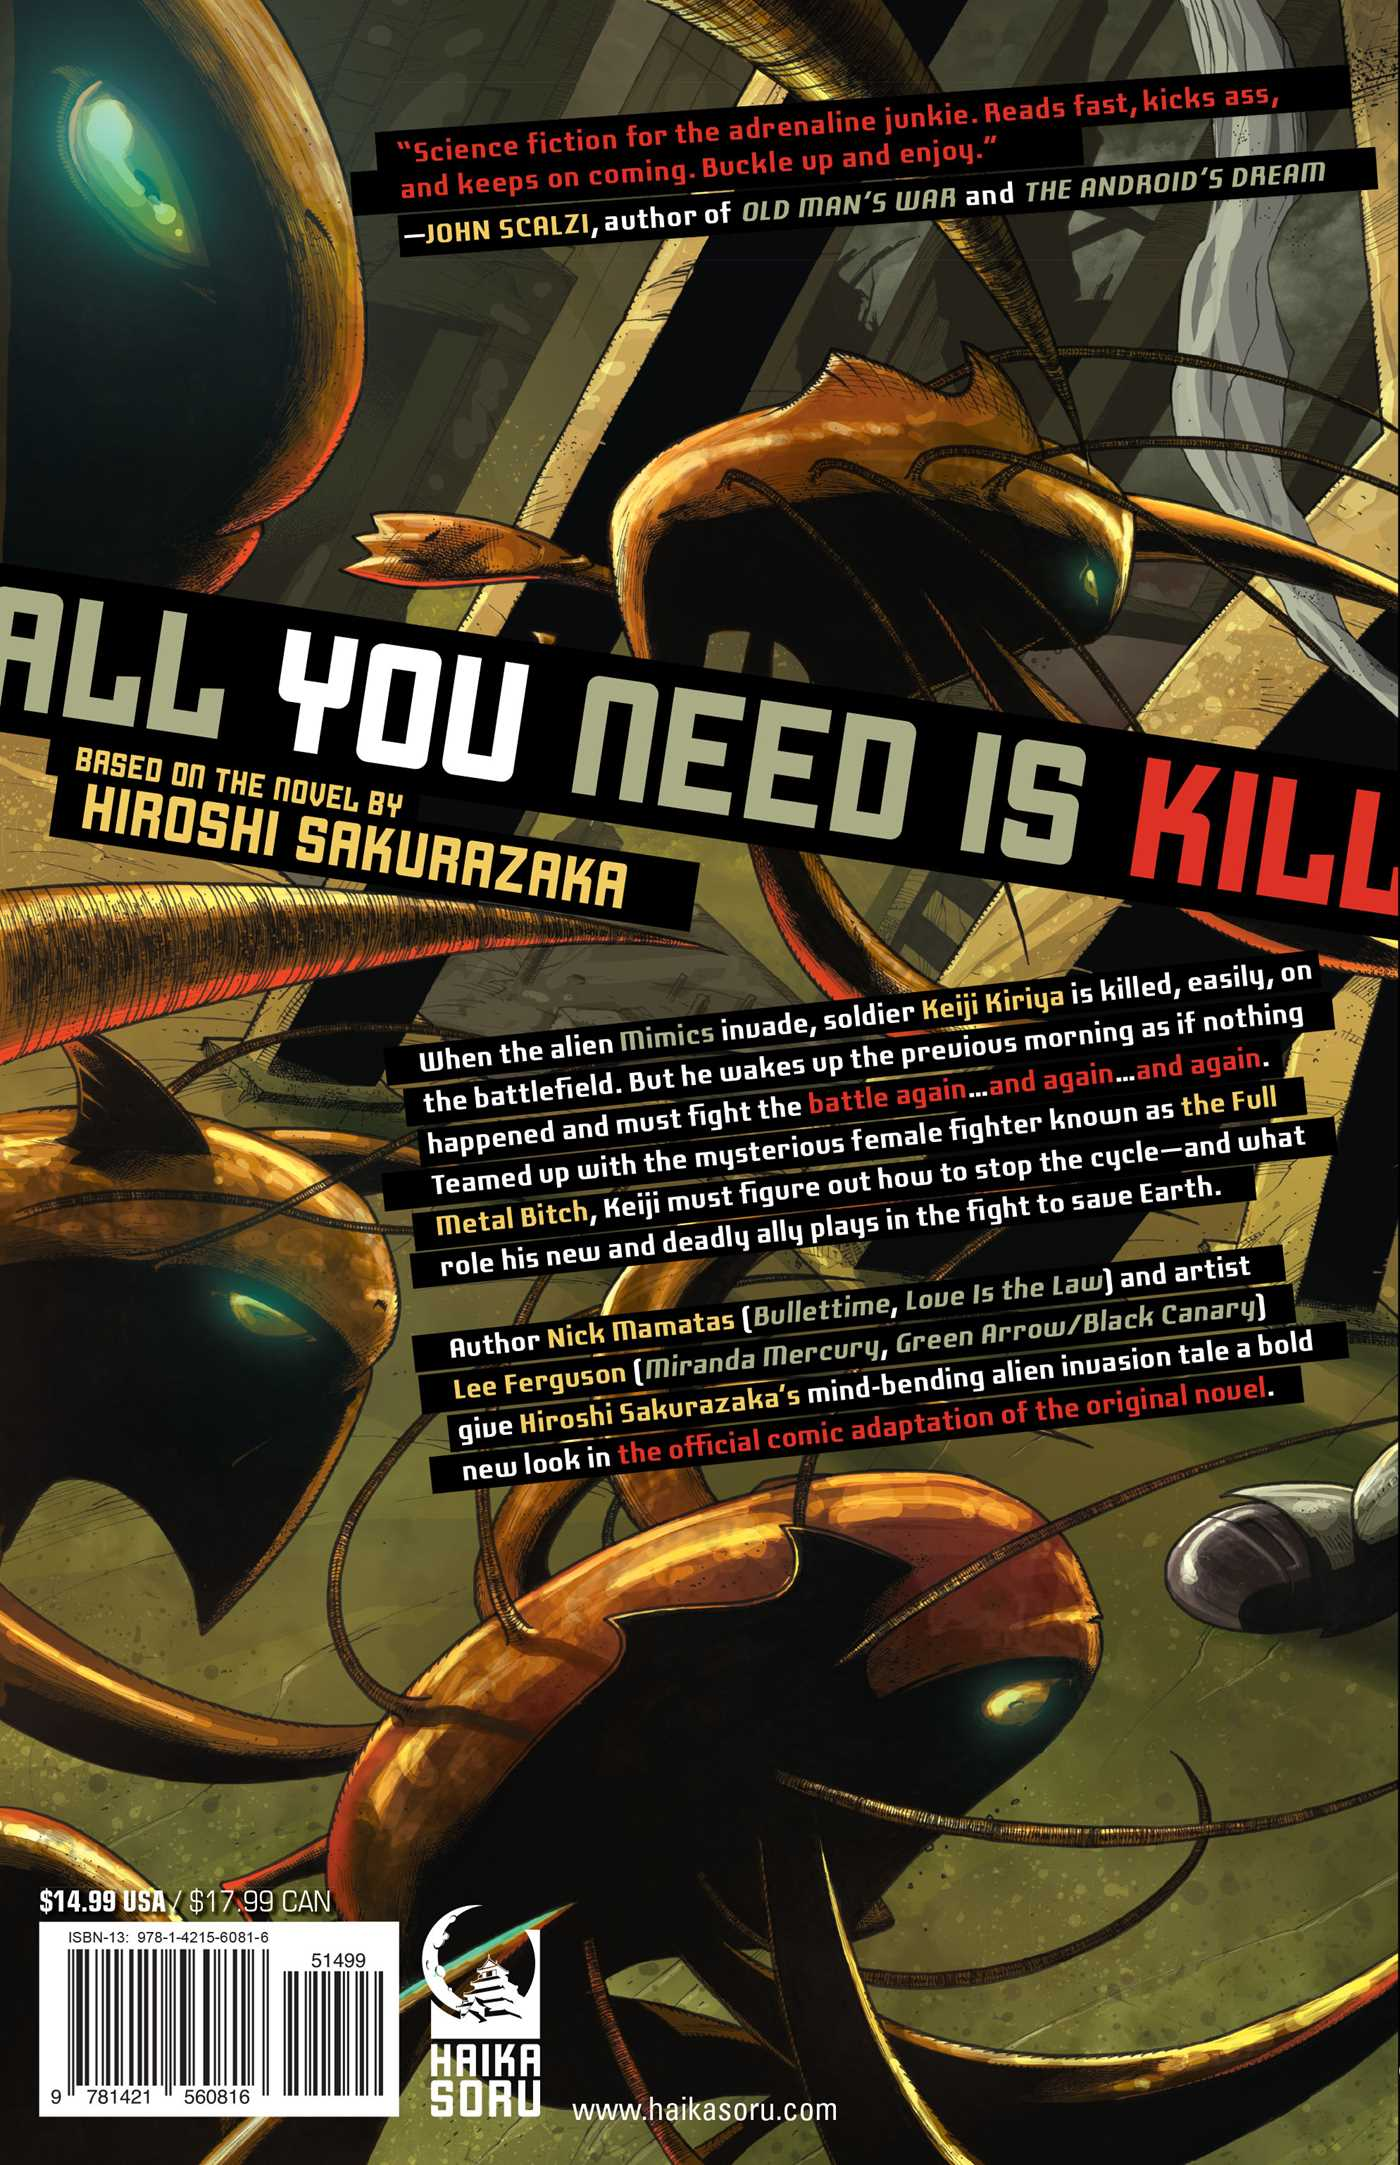 All you need is kill graphic novel 9781421560816 hr back